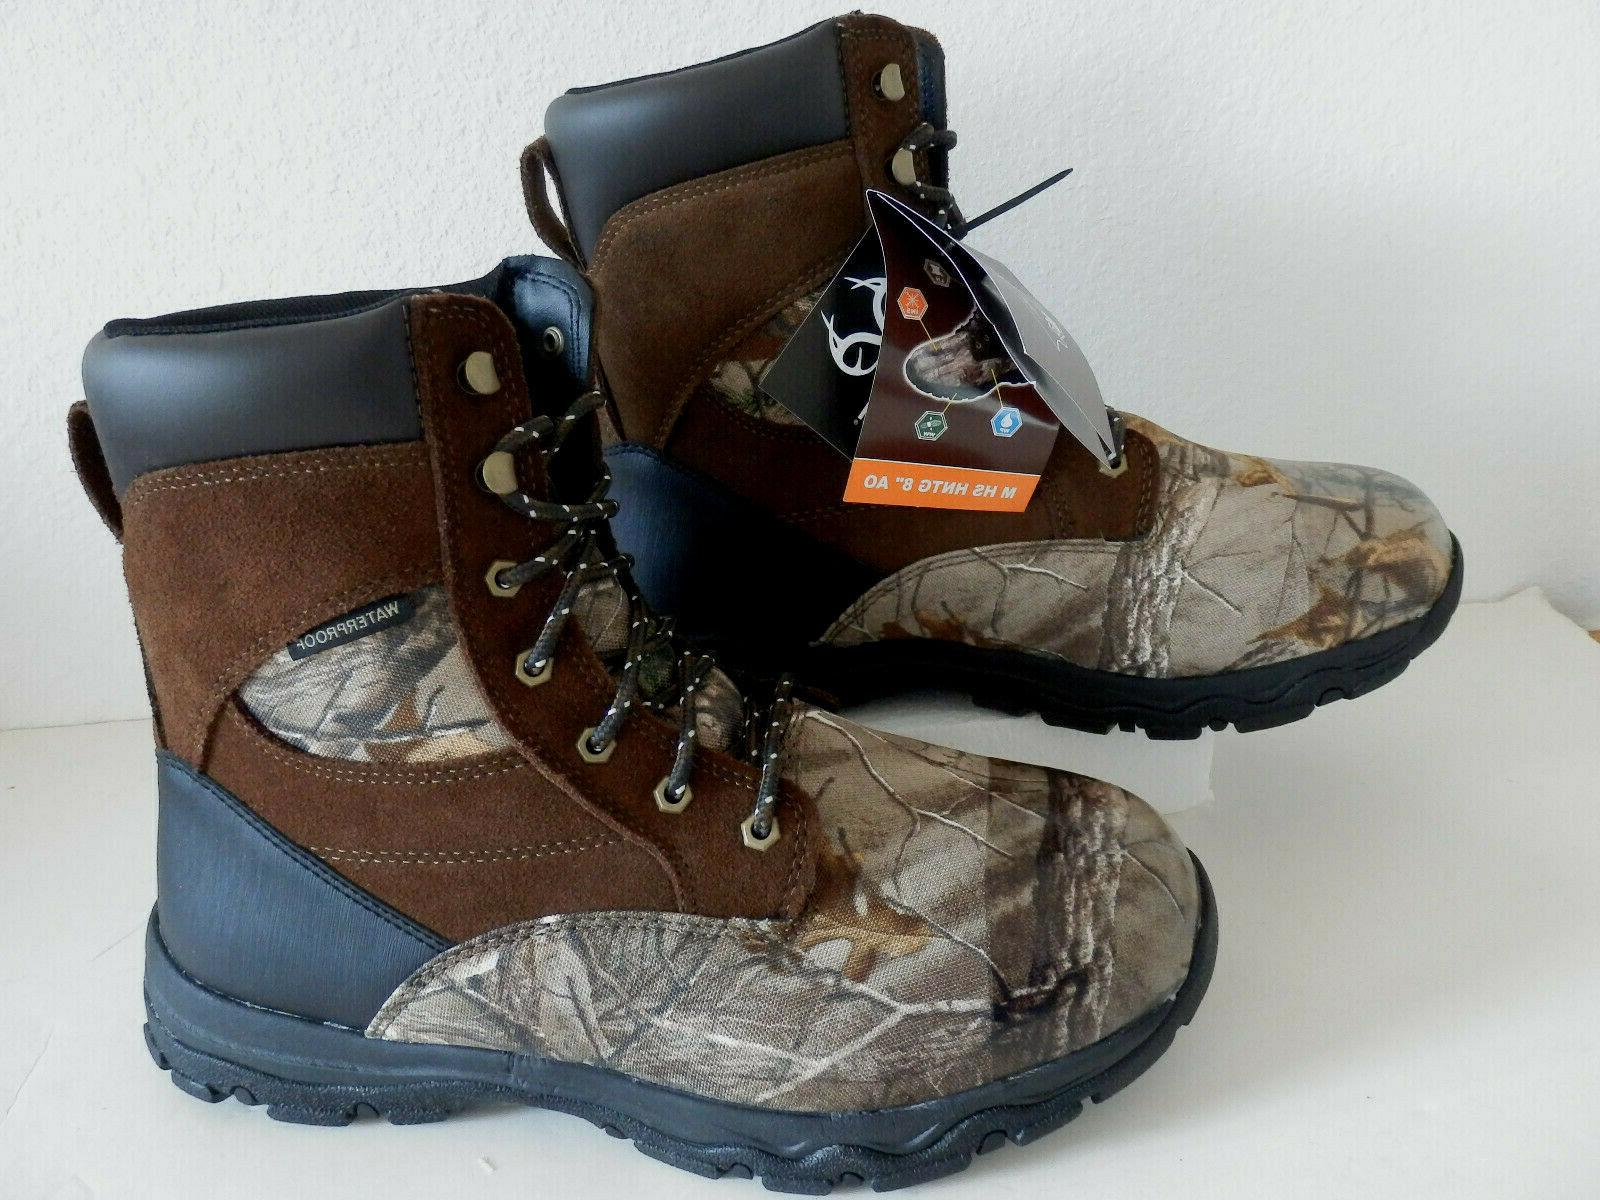 NEW Men's Hunting Boots 800g Thinsulate Sizes